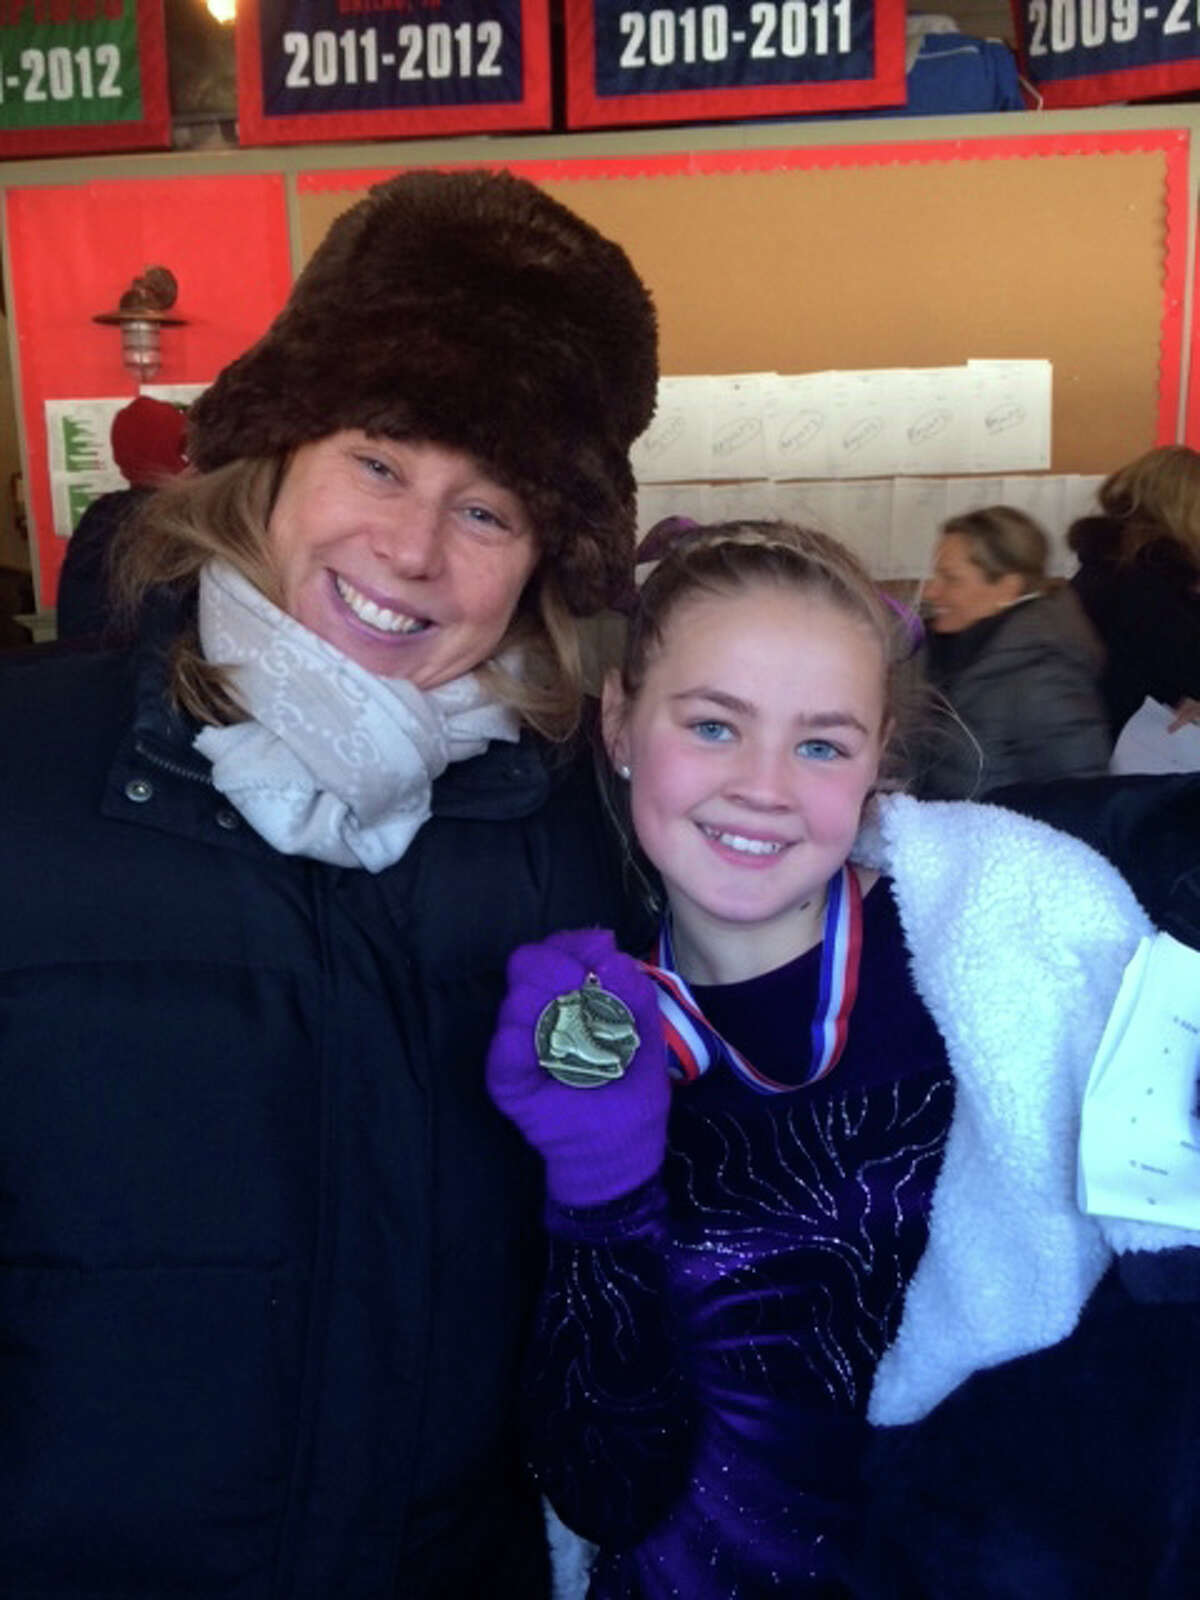 Cate Hicks and her coach Kelly Feda celebrate her gold medal victory in the Basic 3 level competition. Cate is an 11 year-old resident of Greenwich and member of the Greenwich Skating Club.